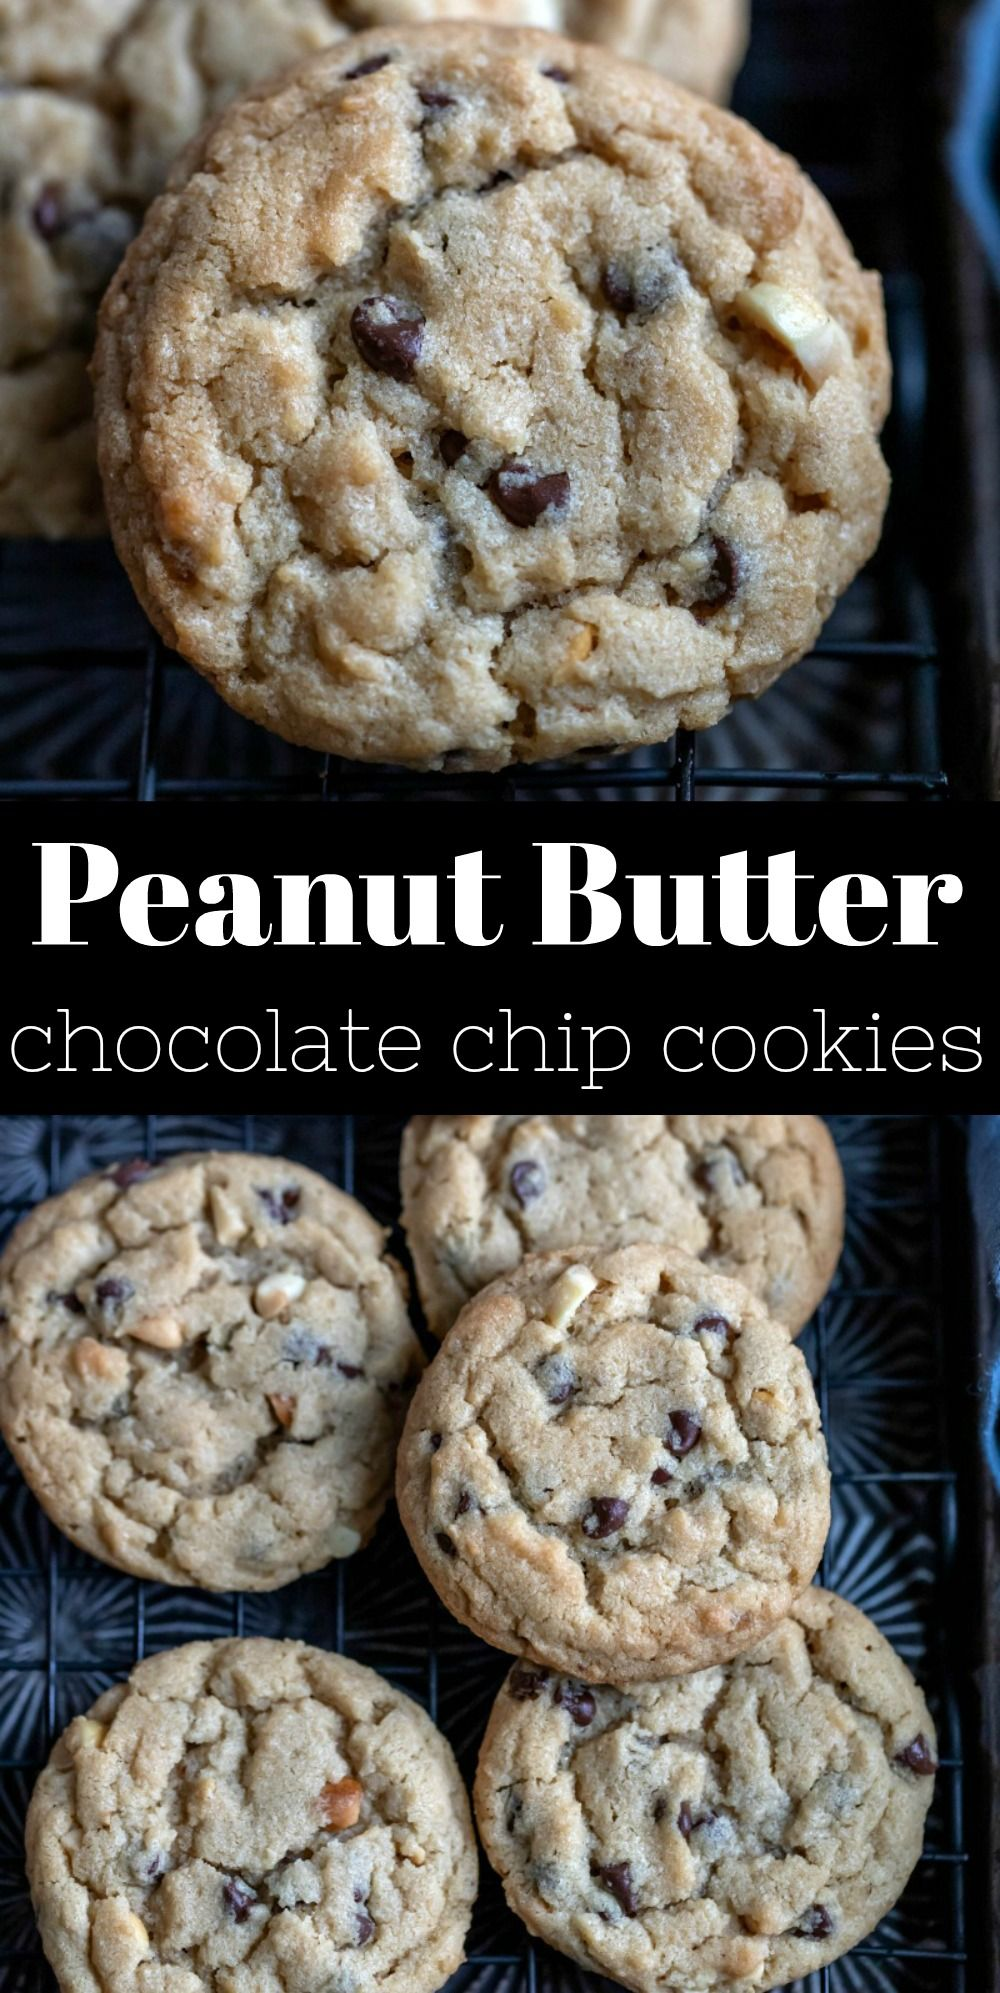 Peanut Butter Chocolate Chip Cookies #chocolatechipcookies